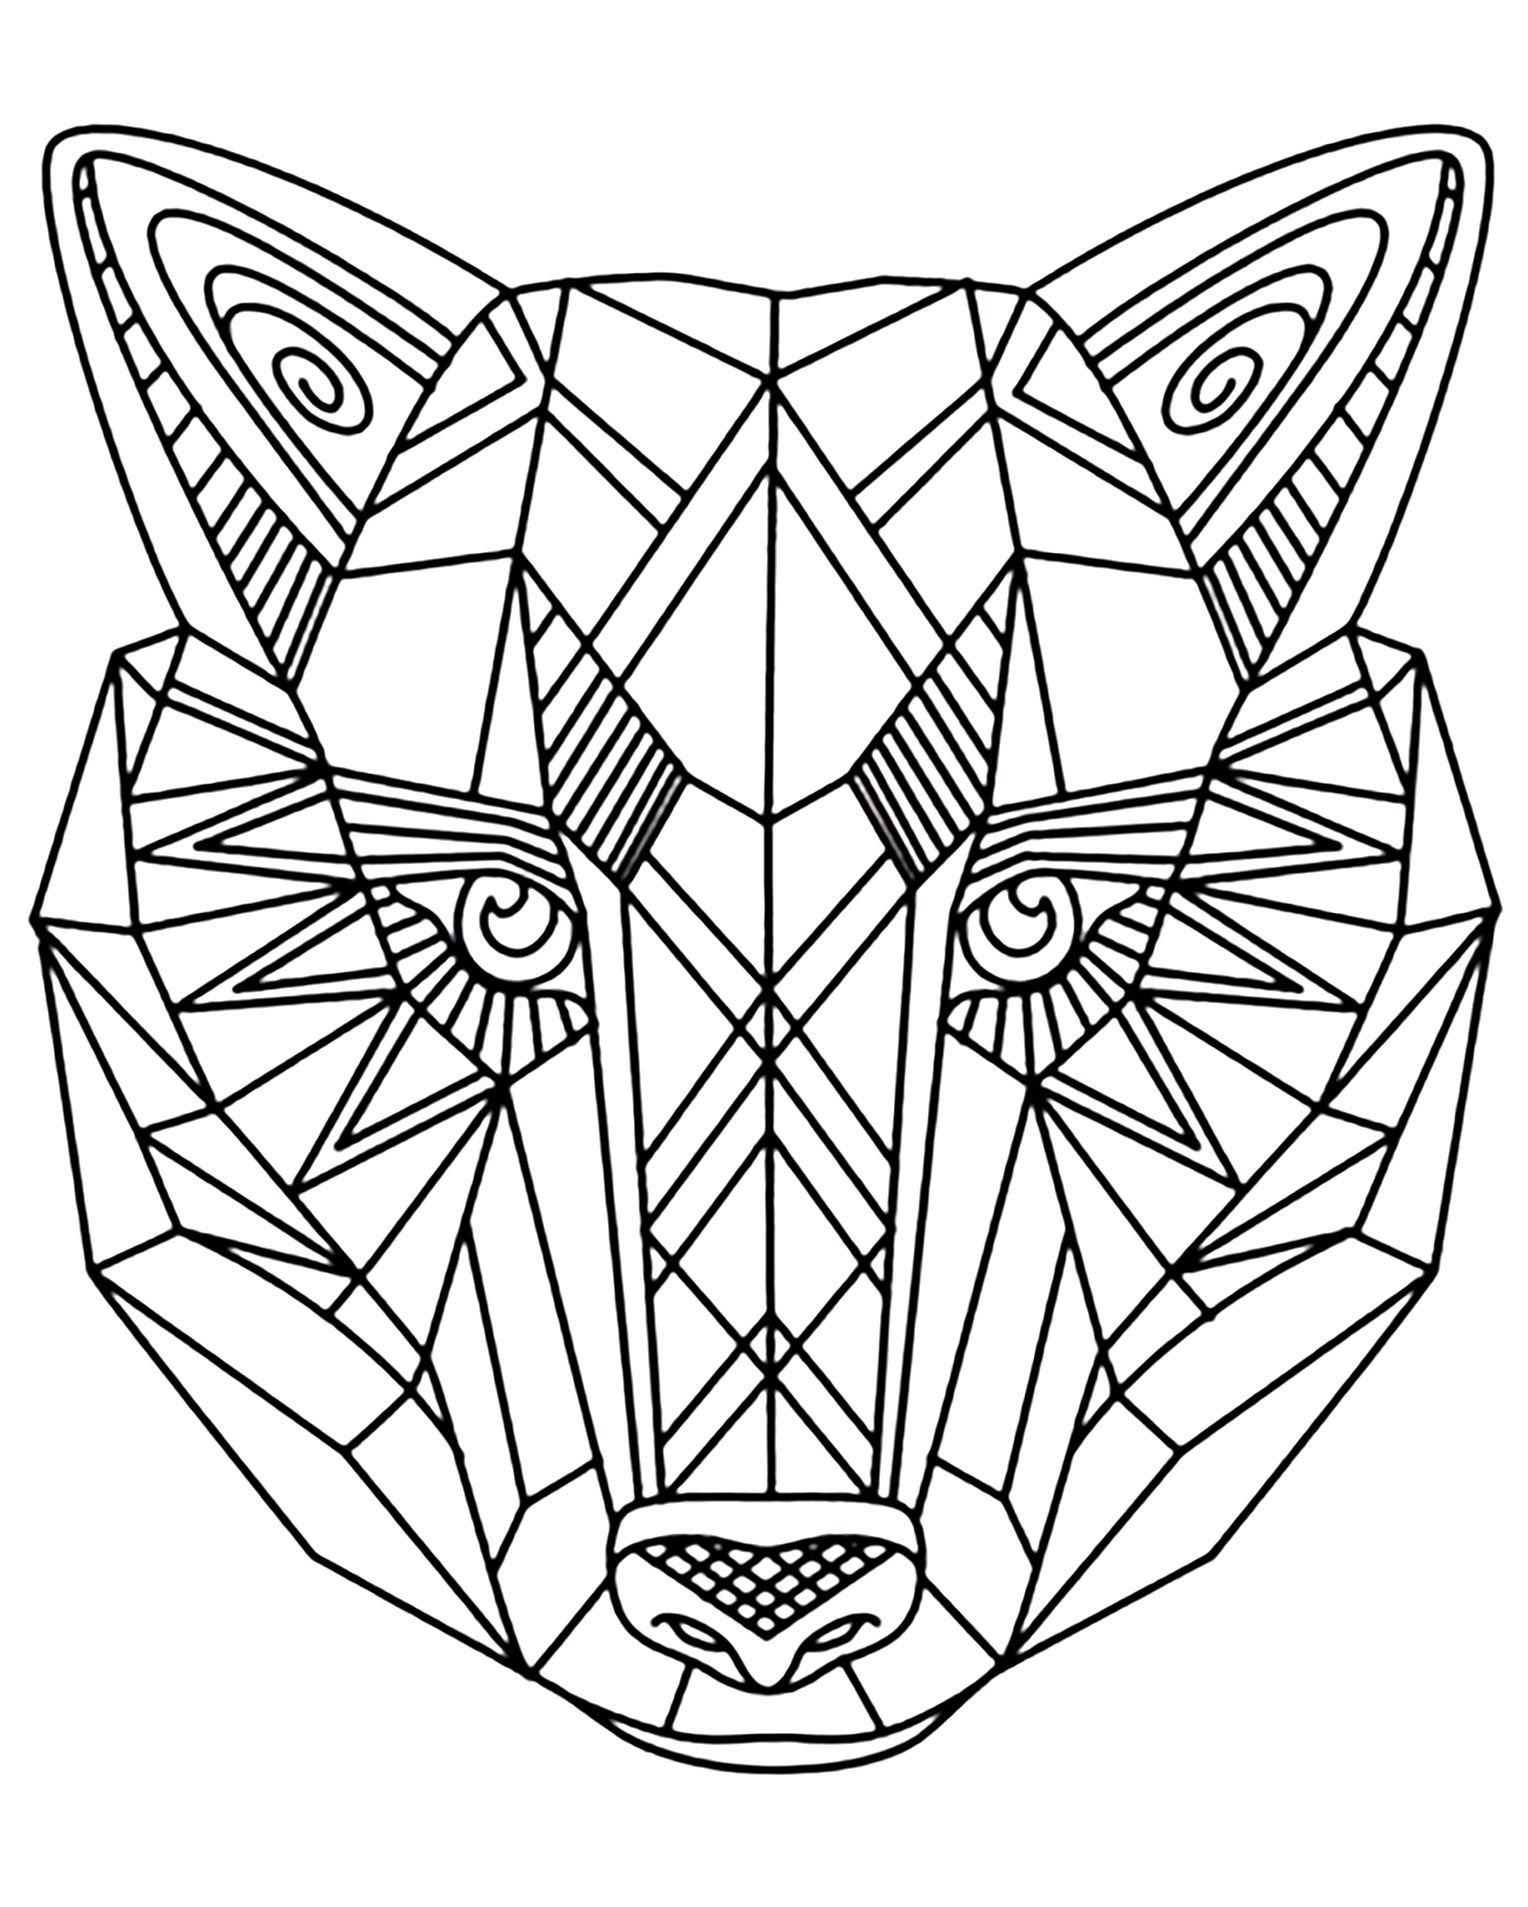 Wolf 1 Wolves Coloring Pages For Adults Just Color Loup